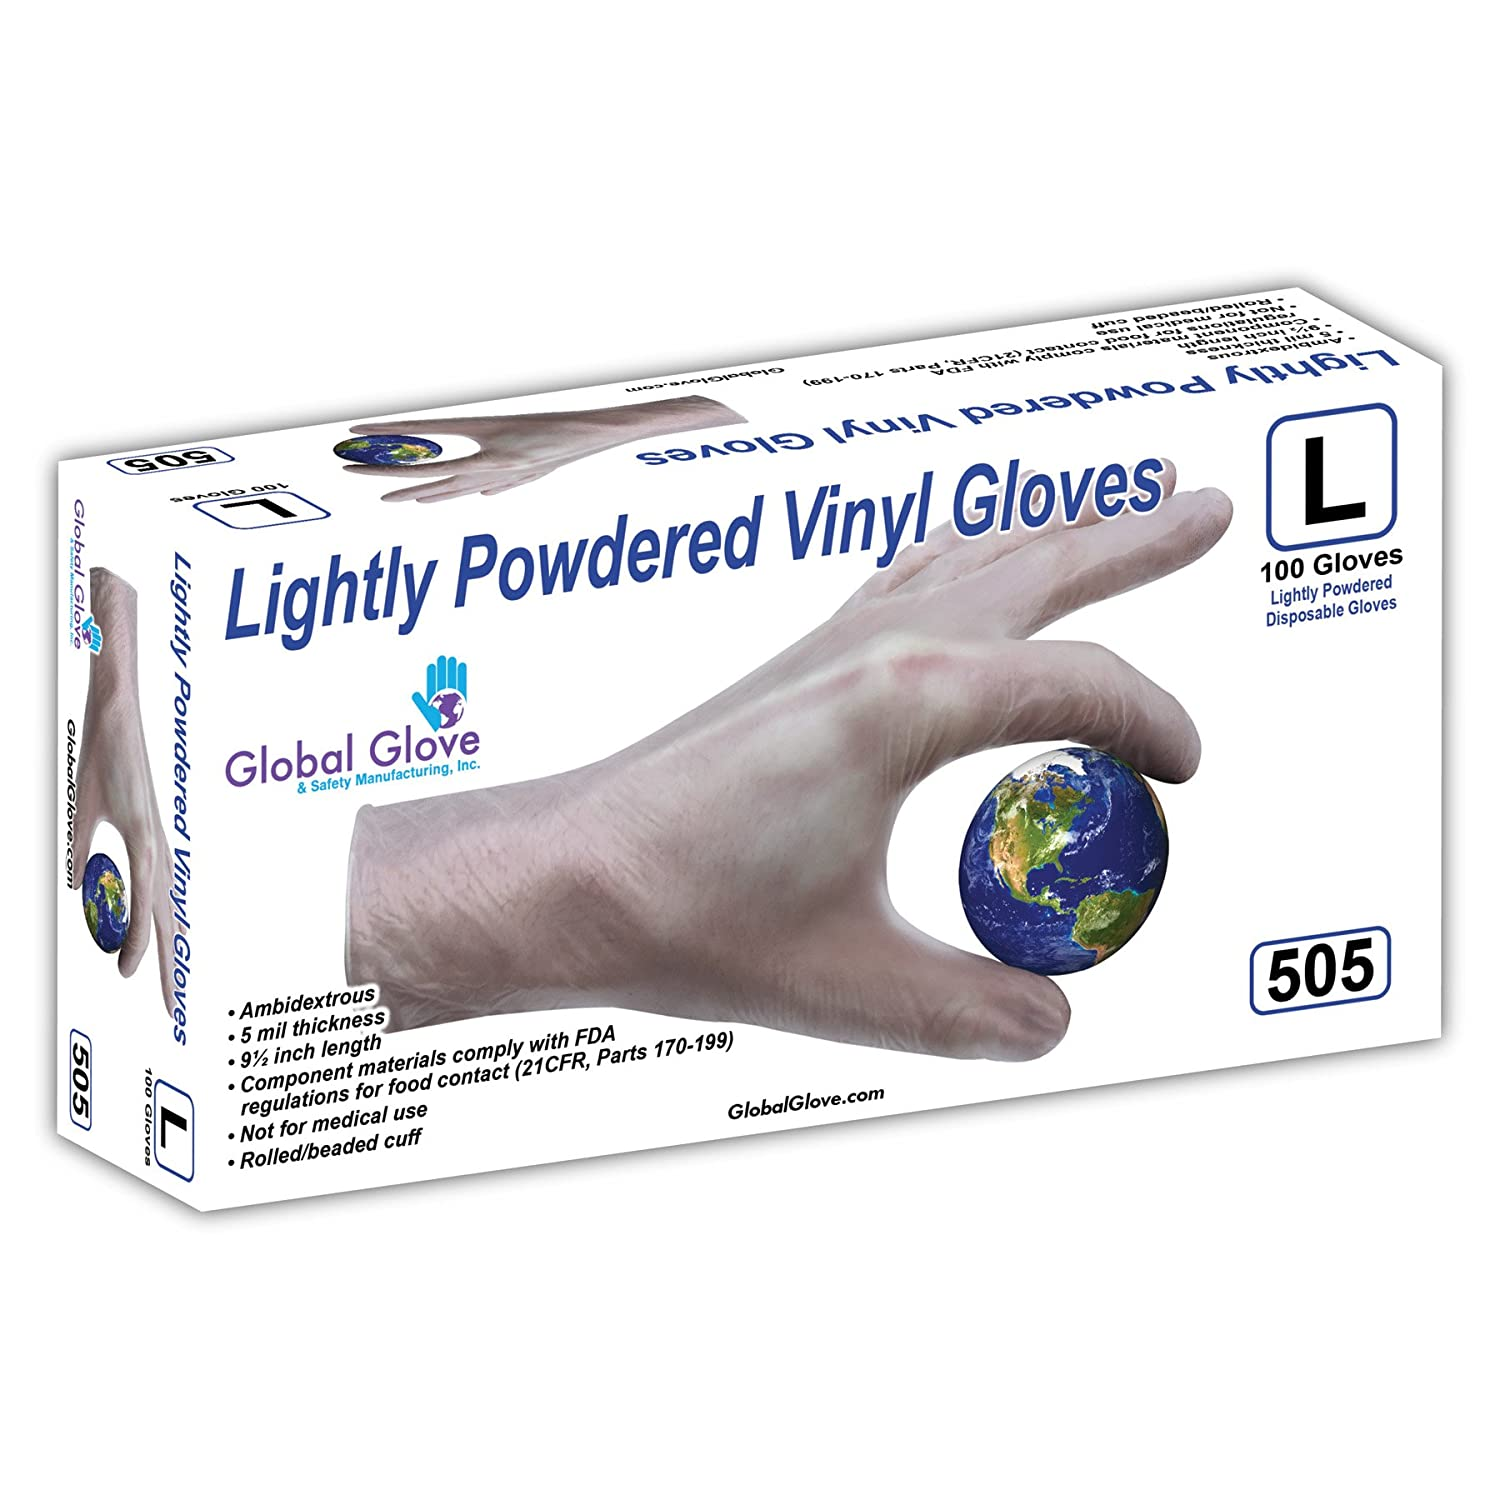 Small Disposable Clear Case of 1000 Powdered 5 mils Thick Global Glove 505 Lightly Vinyl Glove